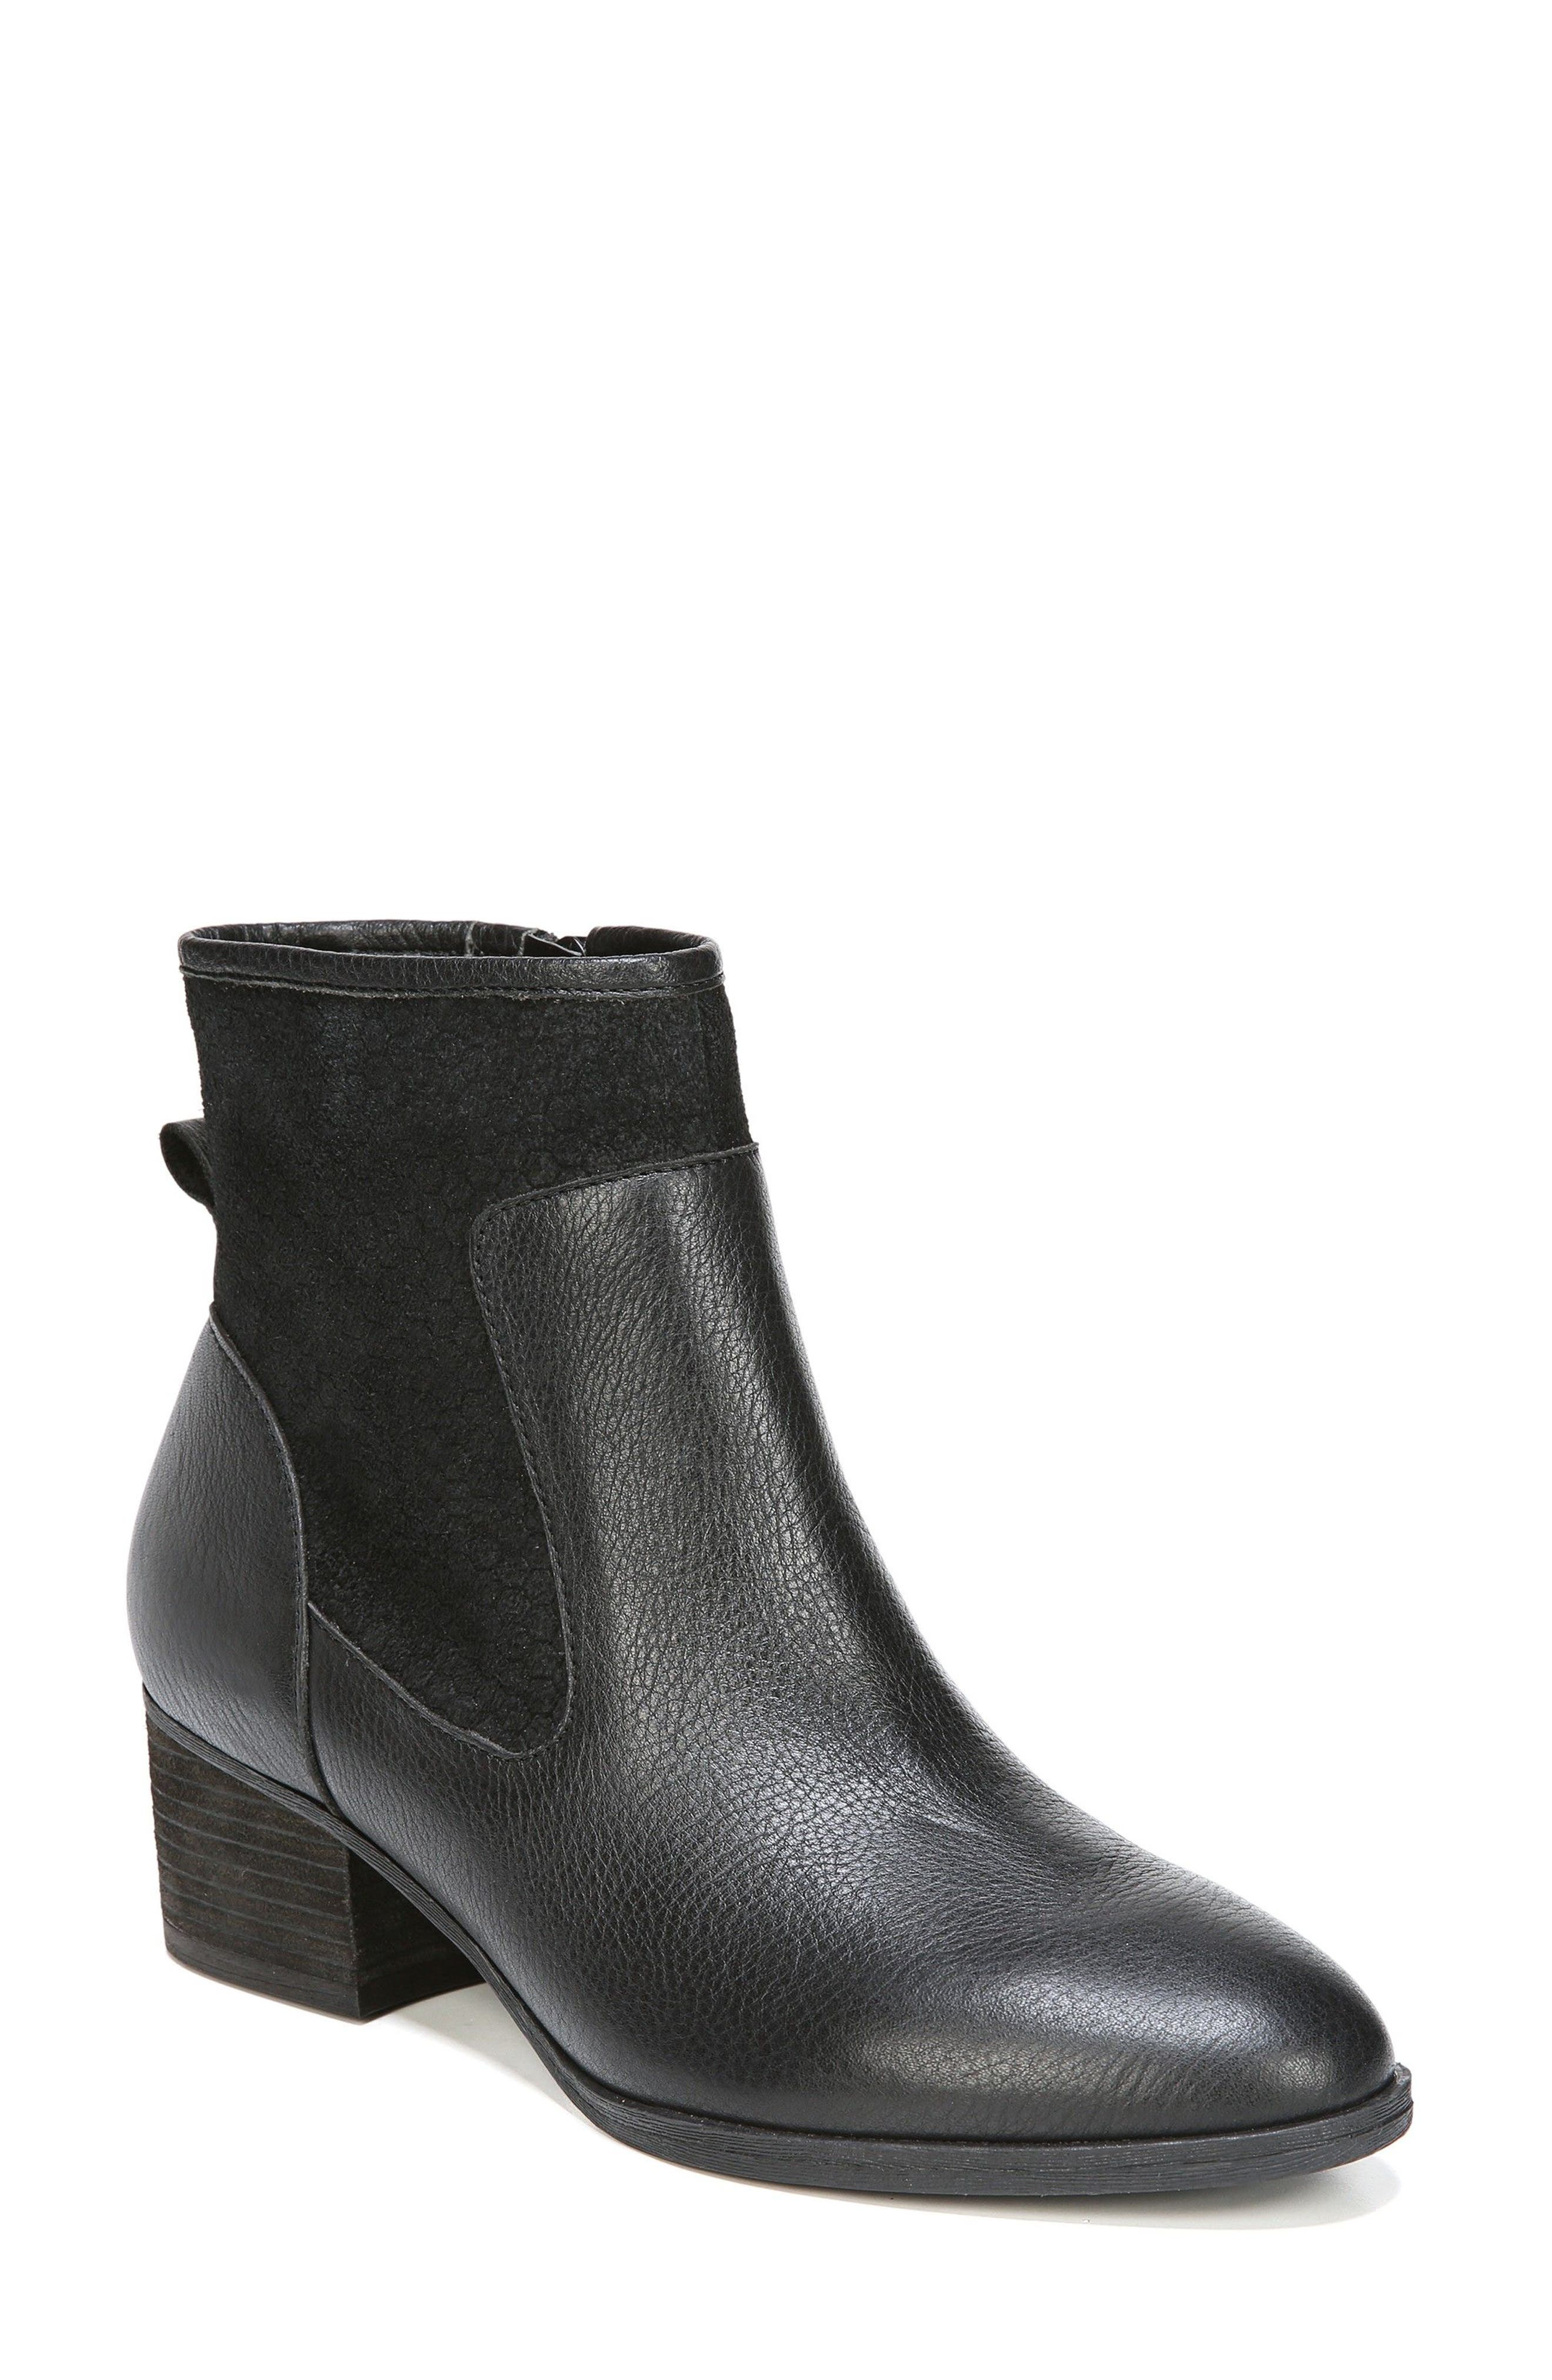 Tawny Bootie,                             Main thumbnail 1, color,                             001